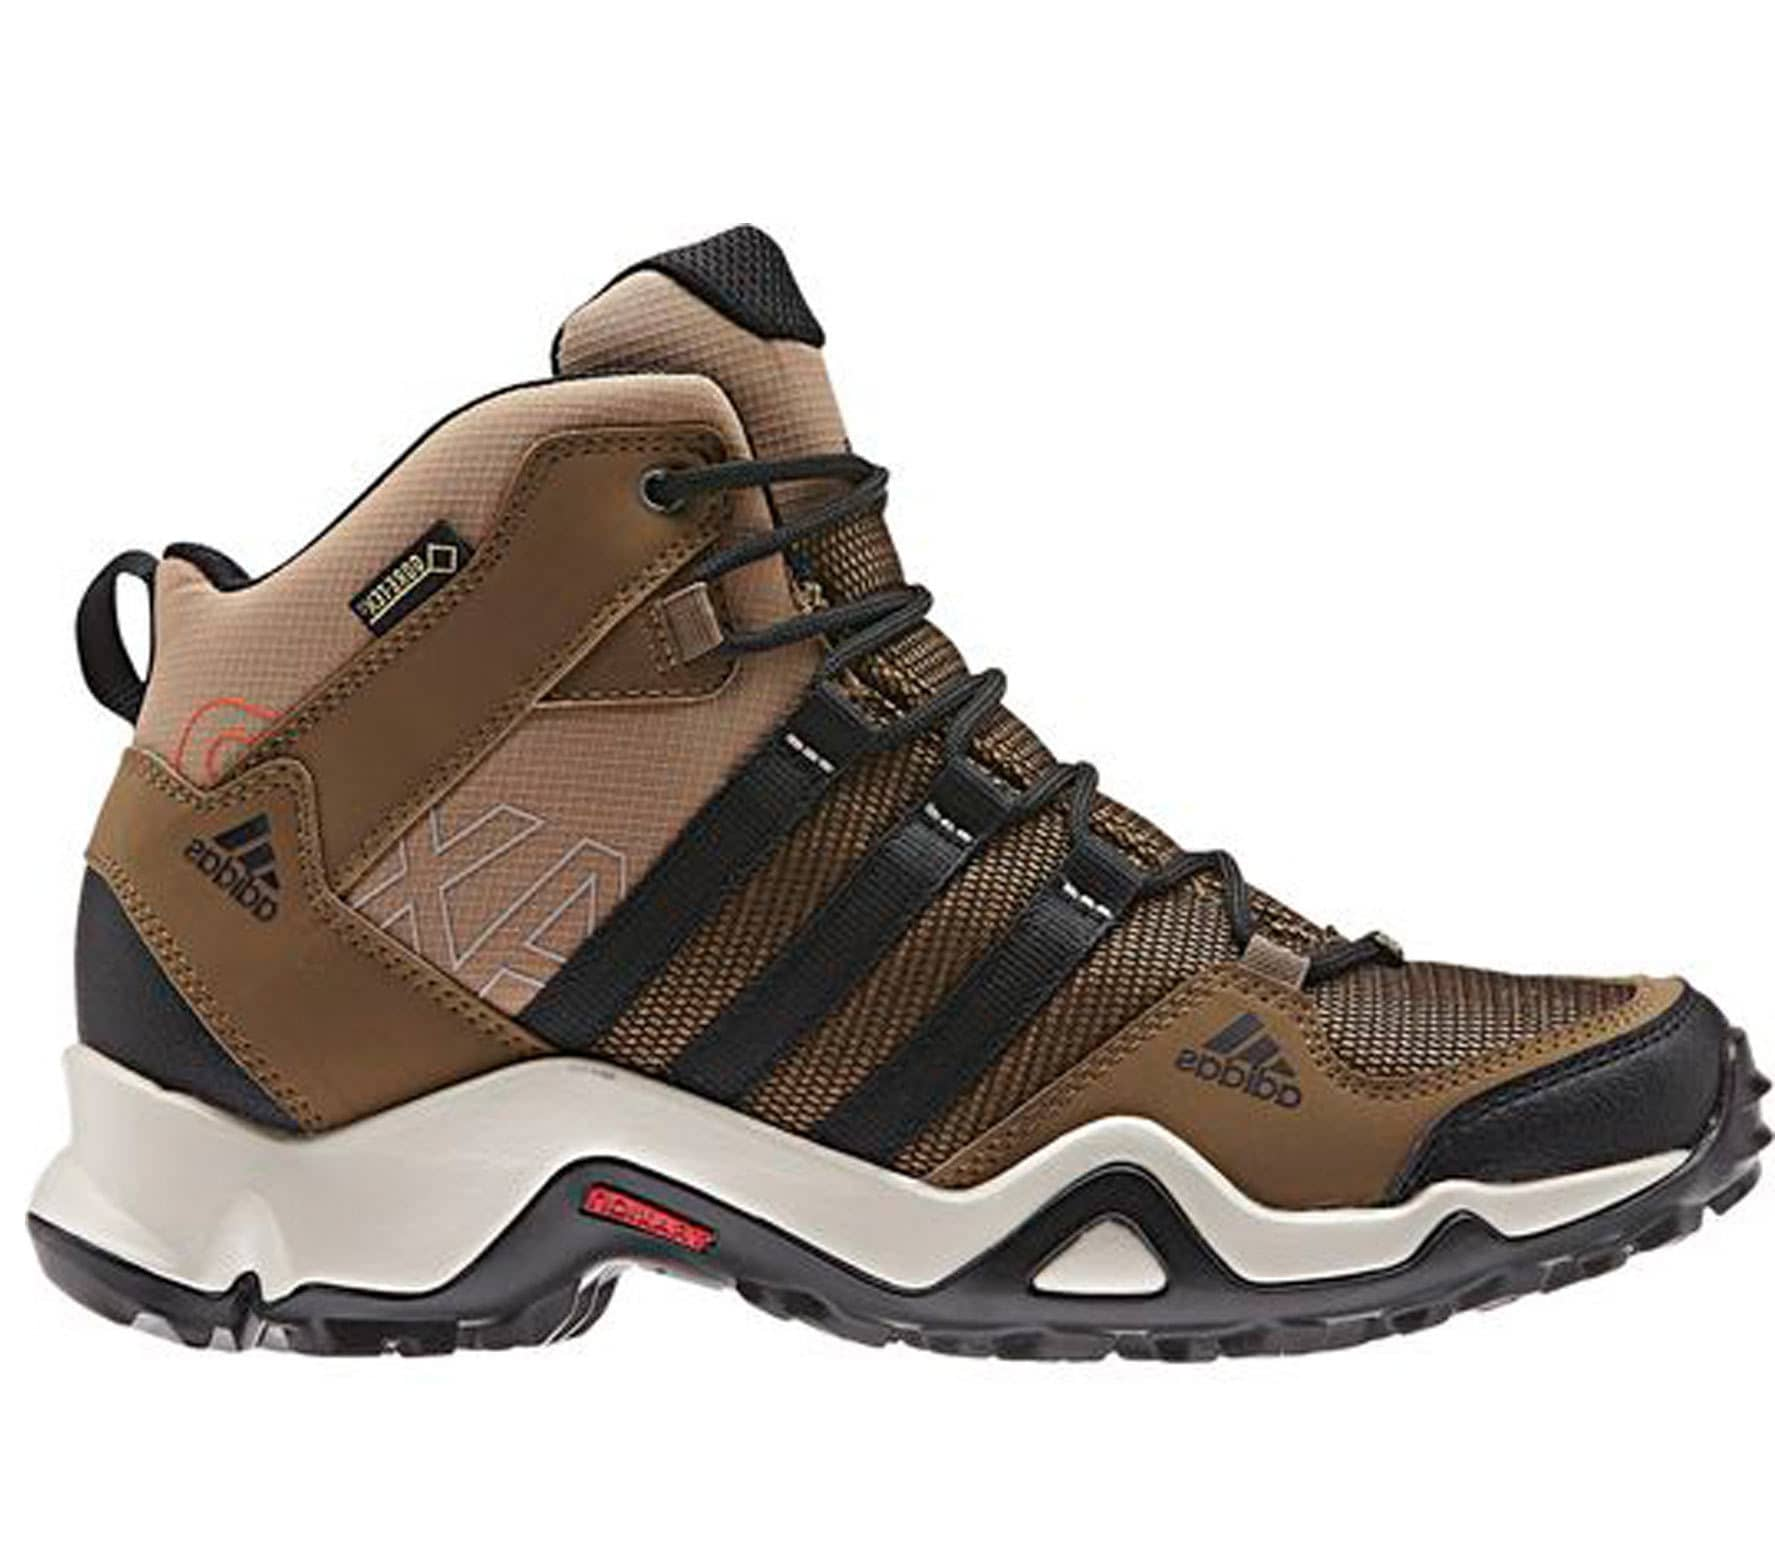 new products 10afd 57c6d Adidas - AX2 Mid GTX women s Trekkingsschuh (brown)